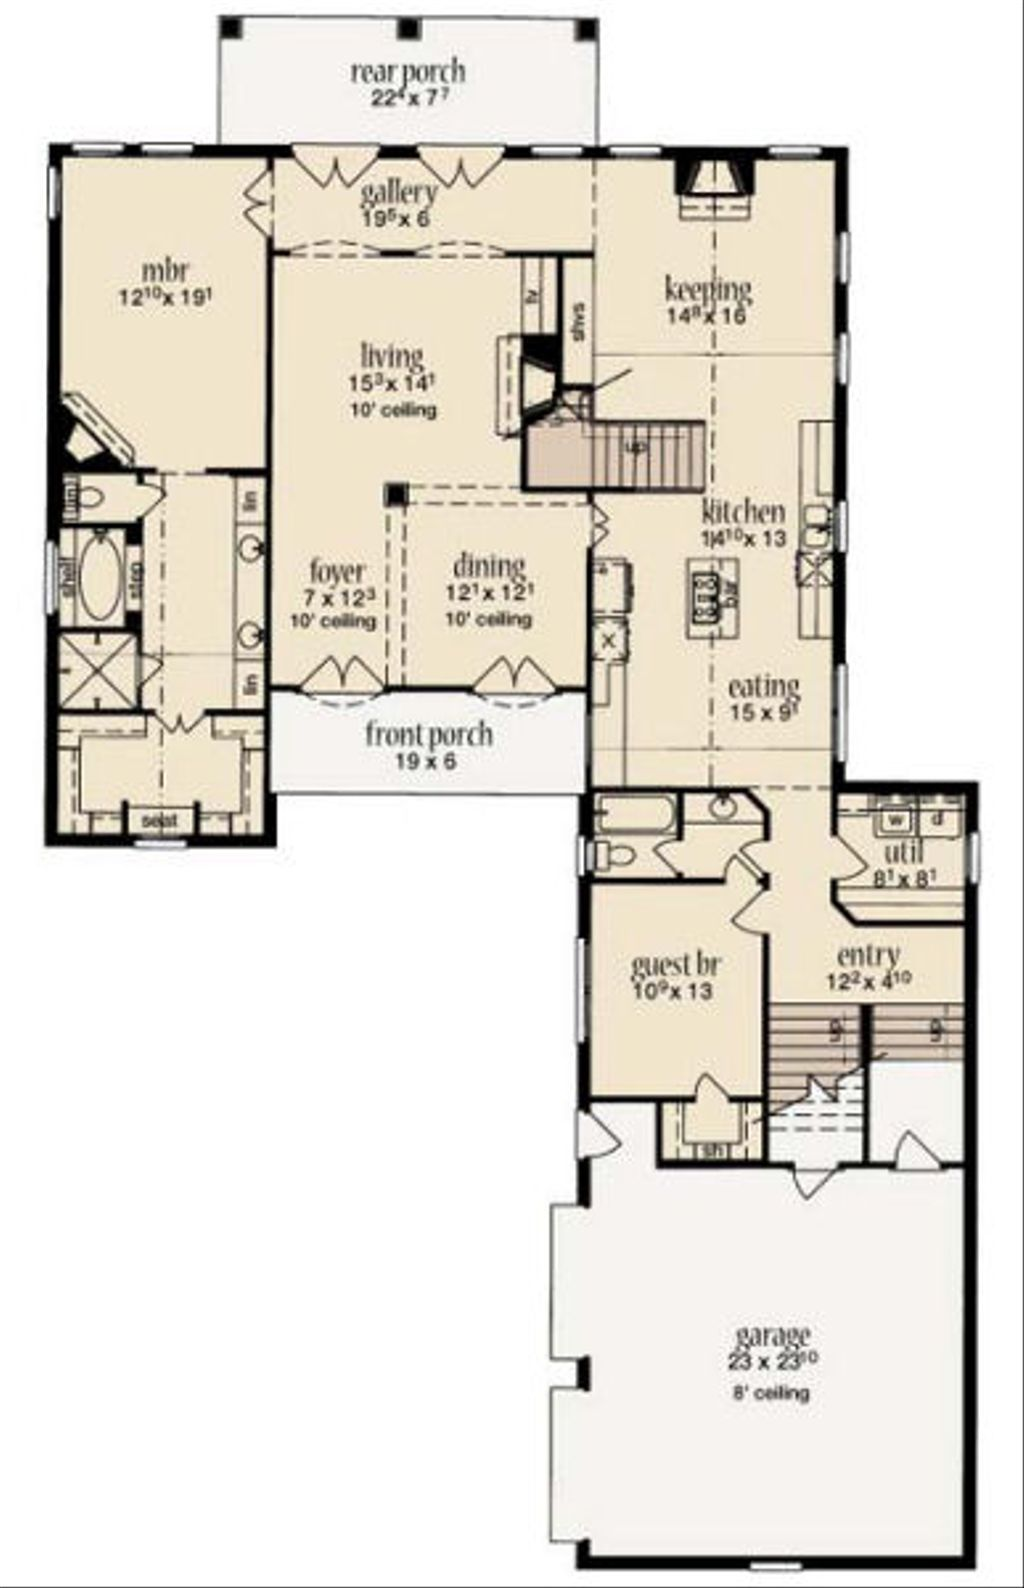 European style house plan 4 beds 3 baths 2895 sq ft plan for Www homeplans com